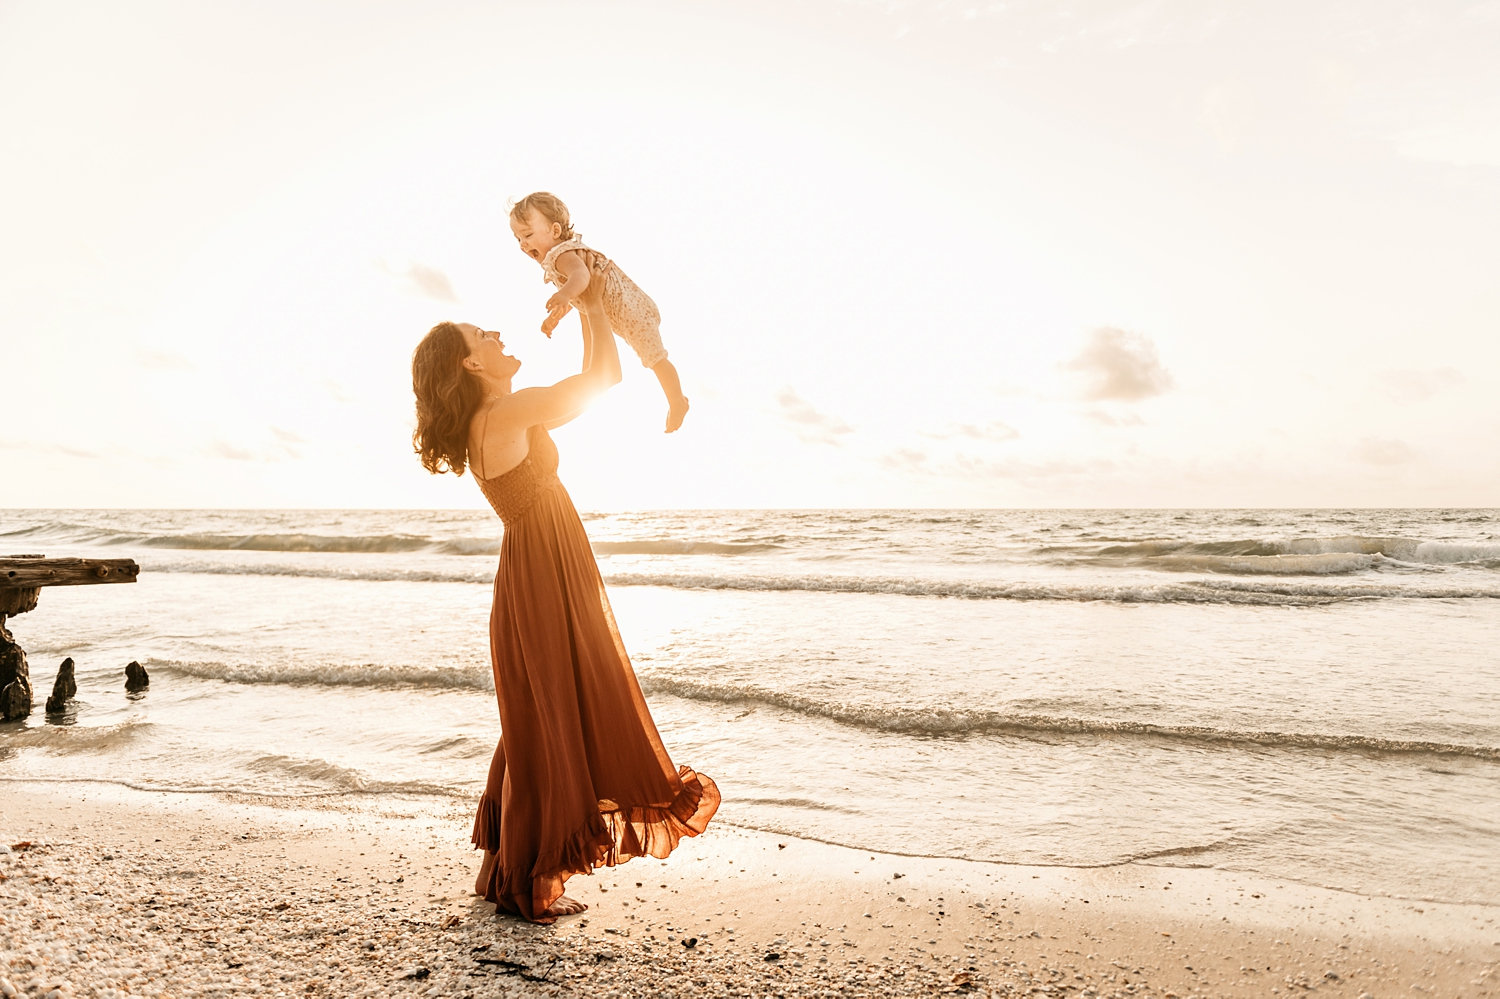 mom holding up smiling baby girl at the beach, Naples Beach, Florida, Rya Duncklee